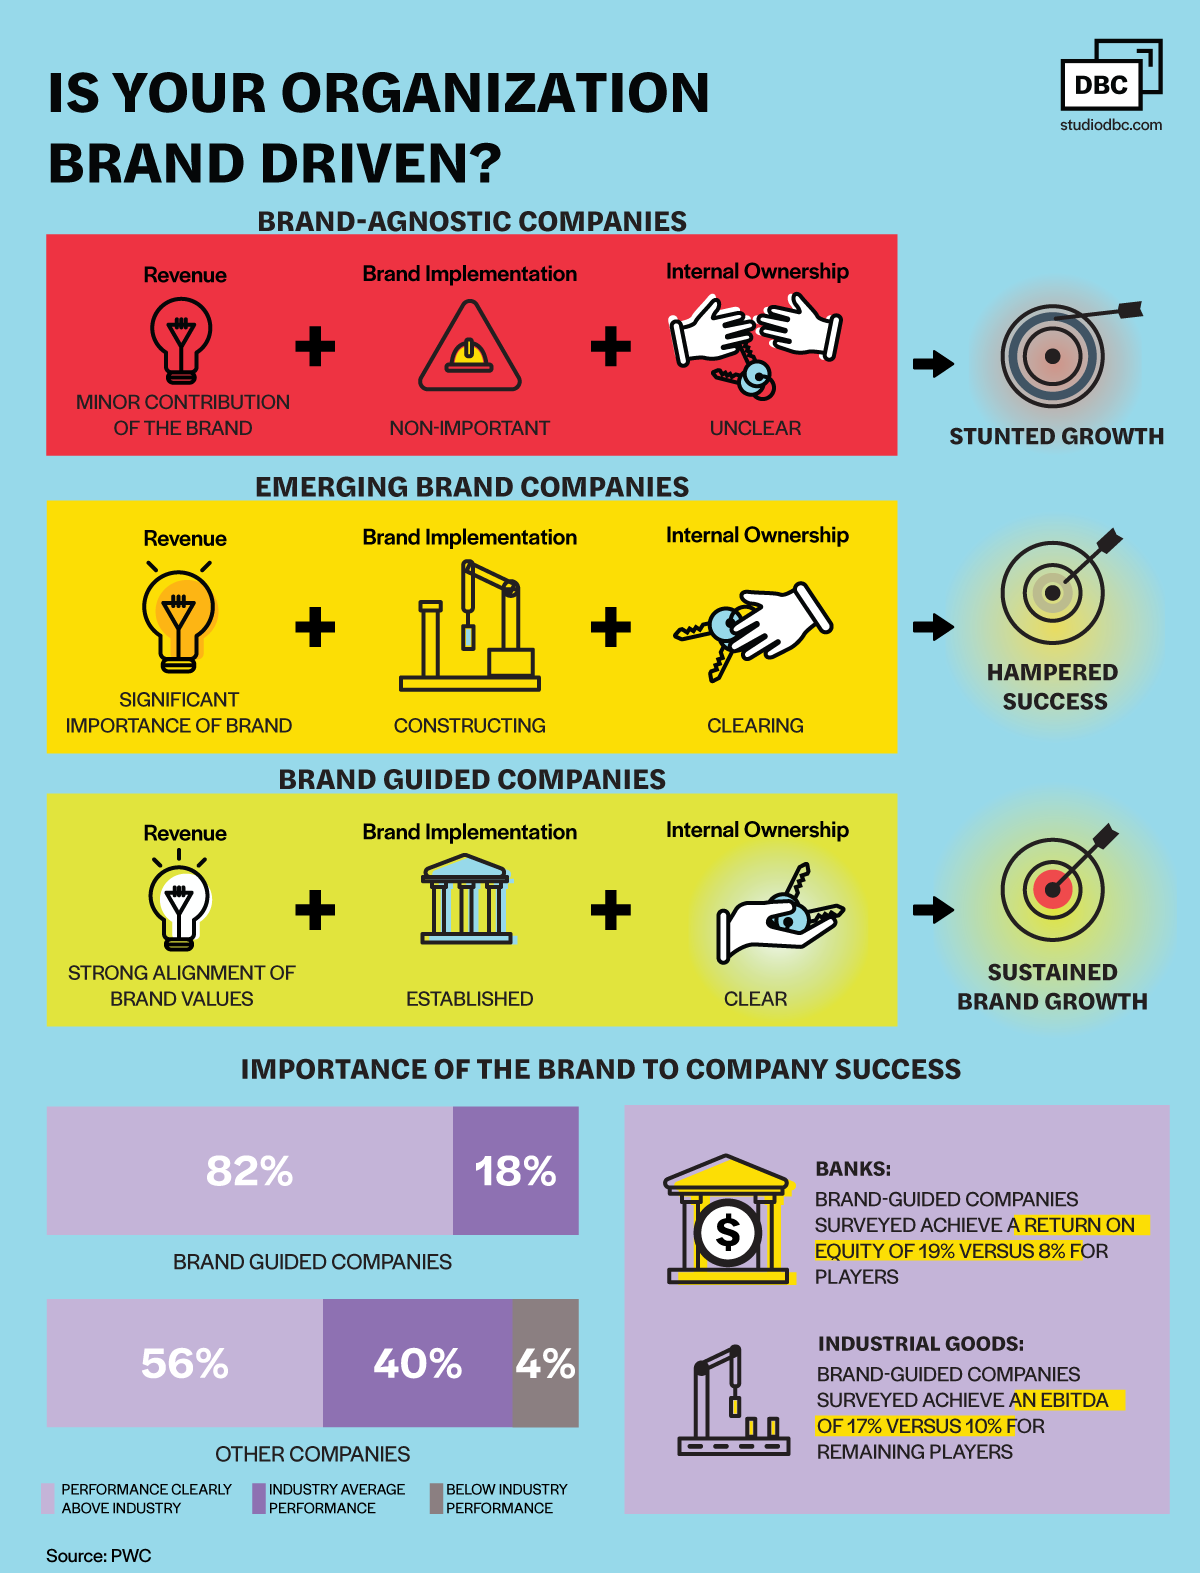 Brand-Driven-infographic---1.1-01.png